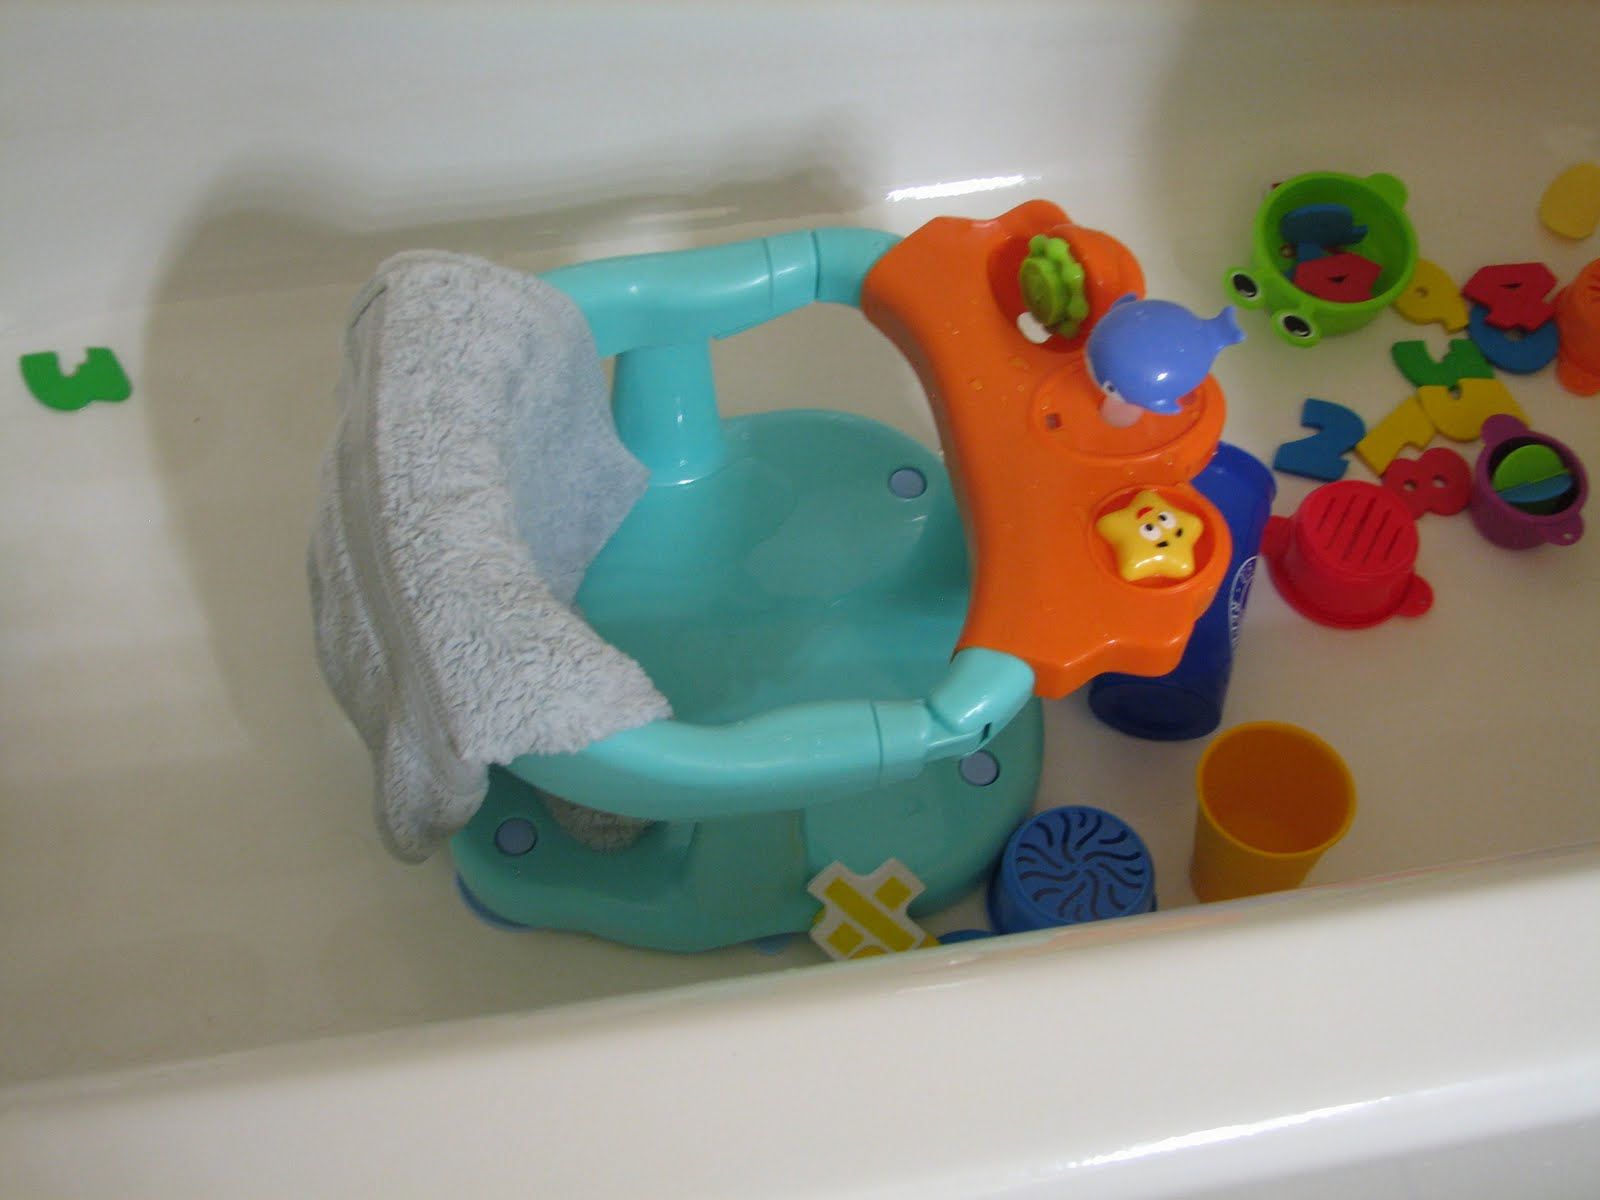 First Lady of the House: Infant Bath Chair